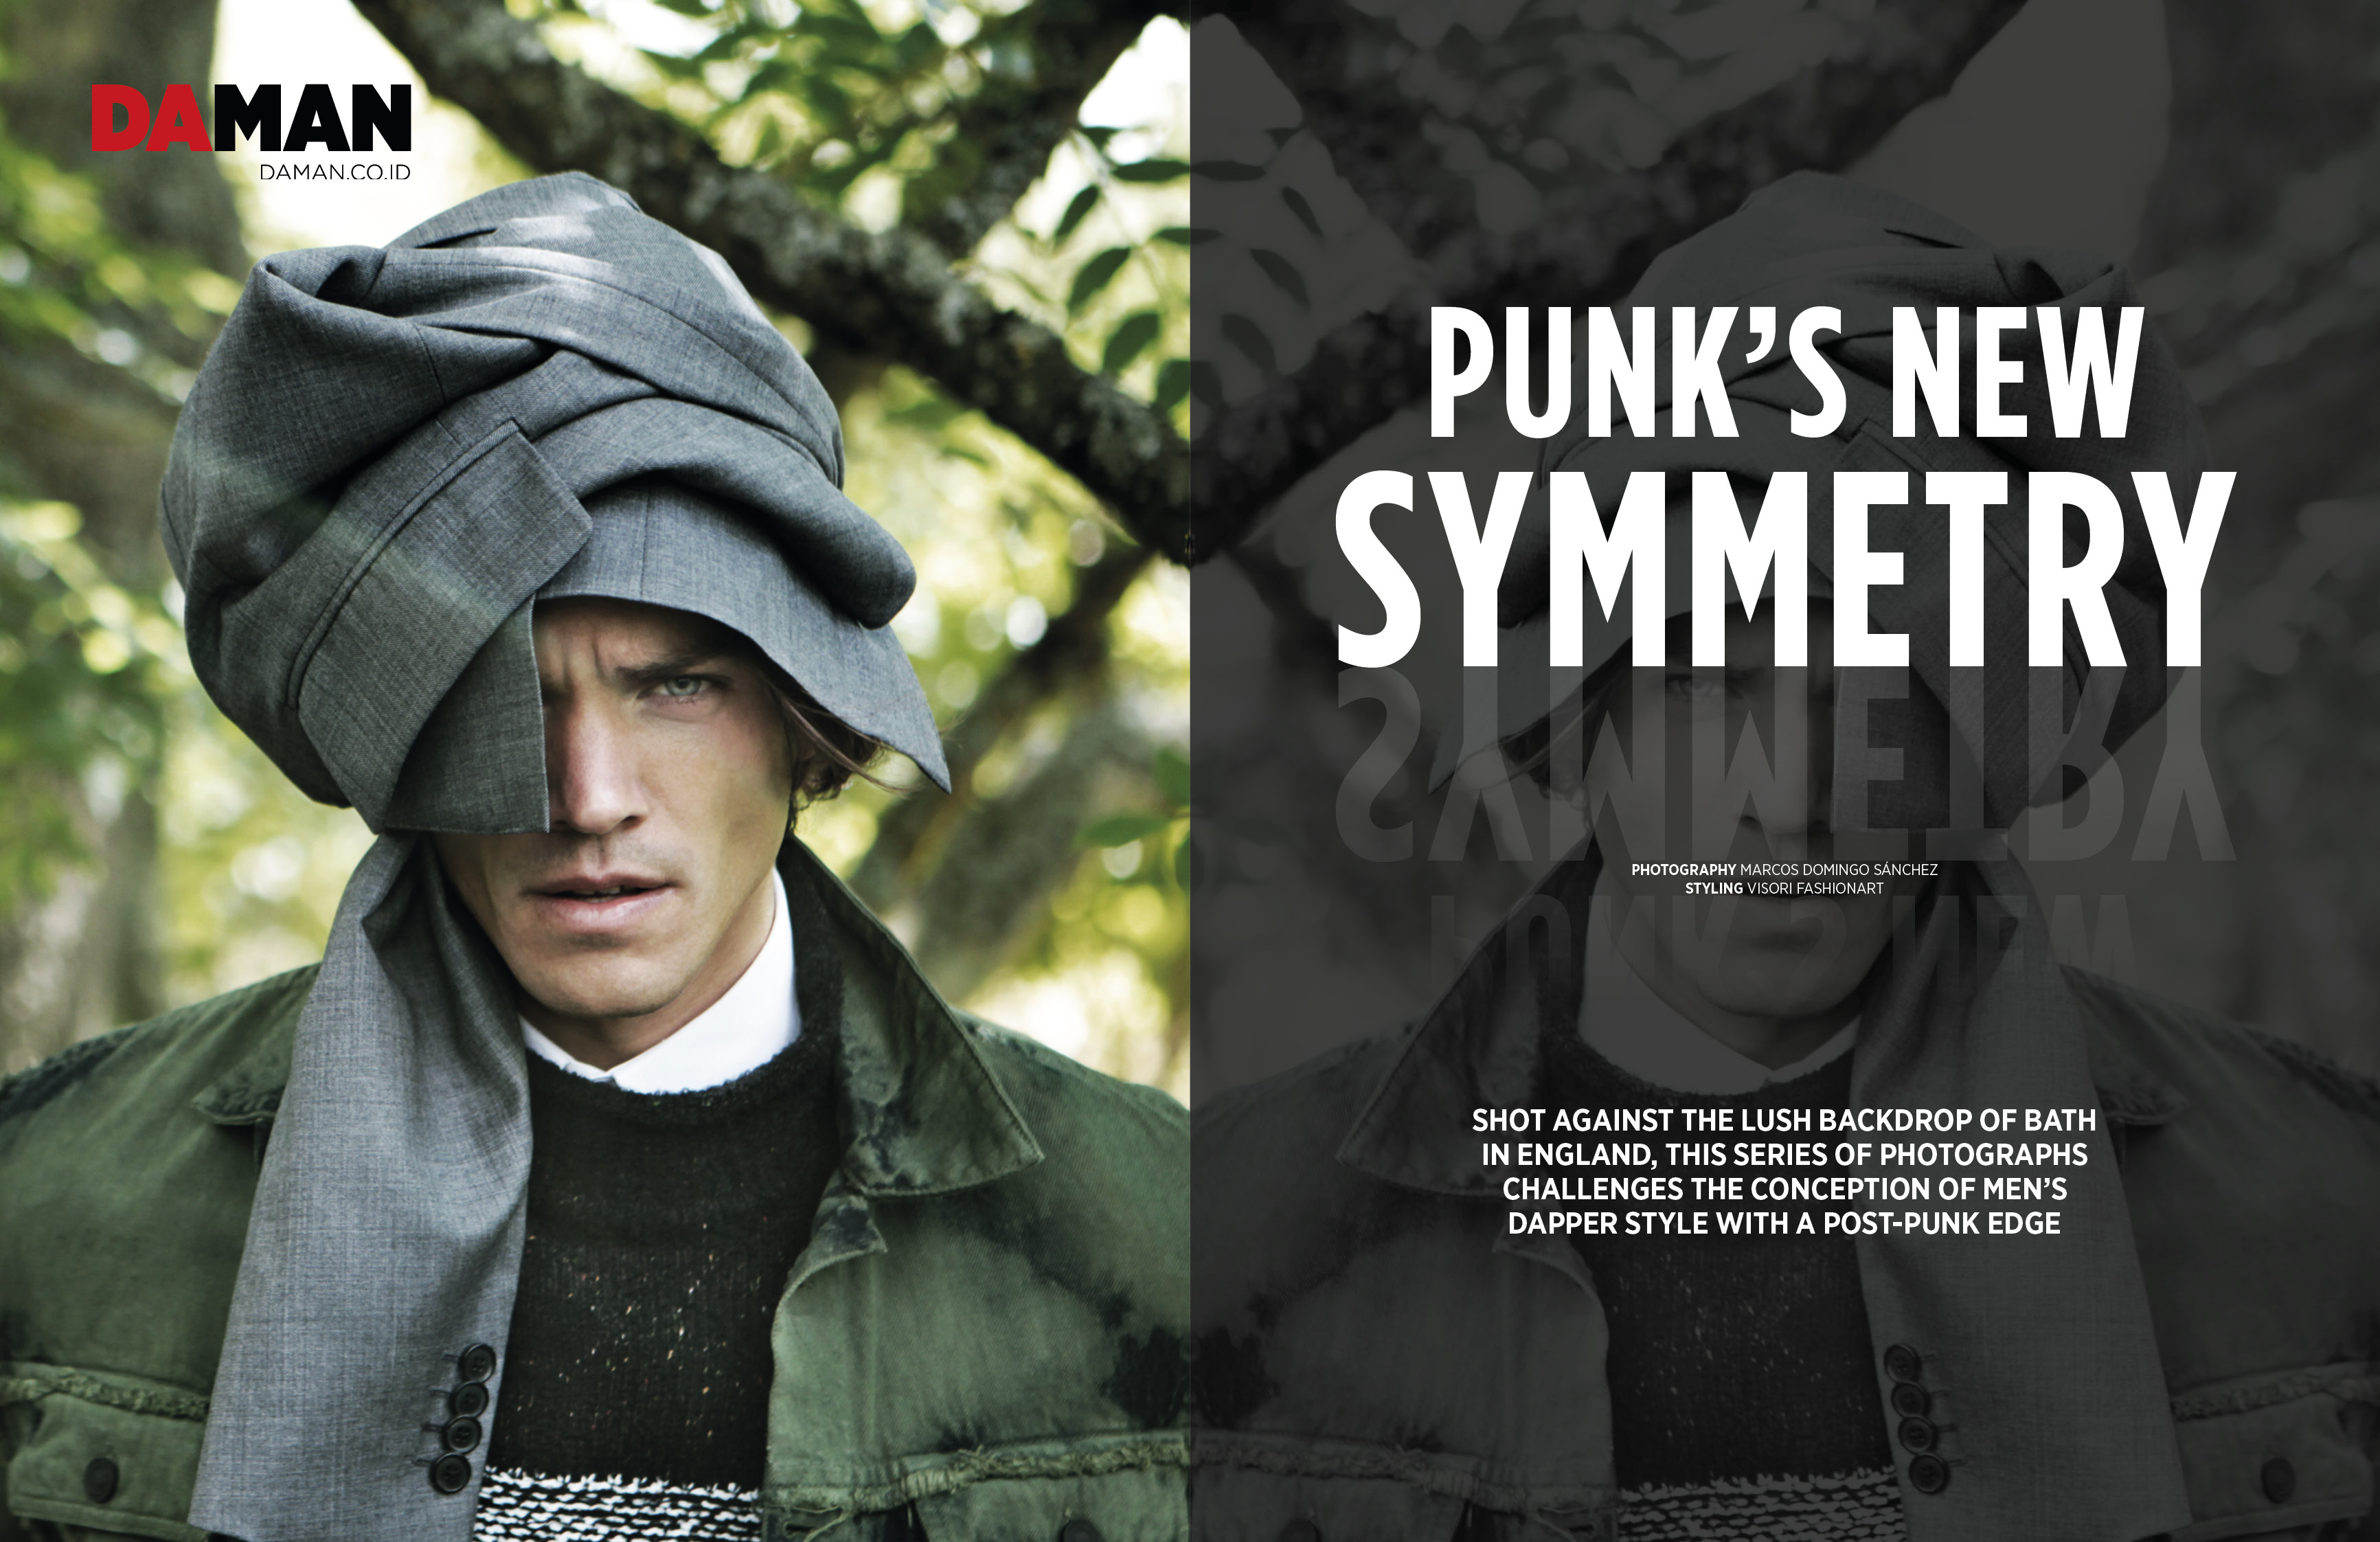 Fashion Spread: Punk's New Symmetry